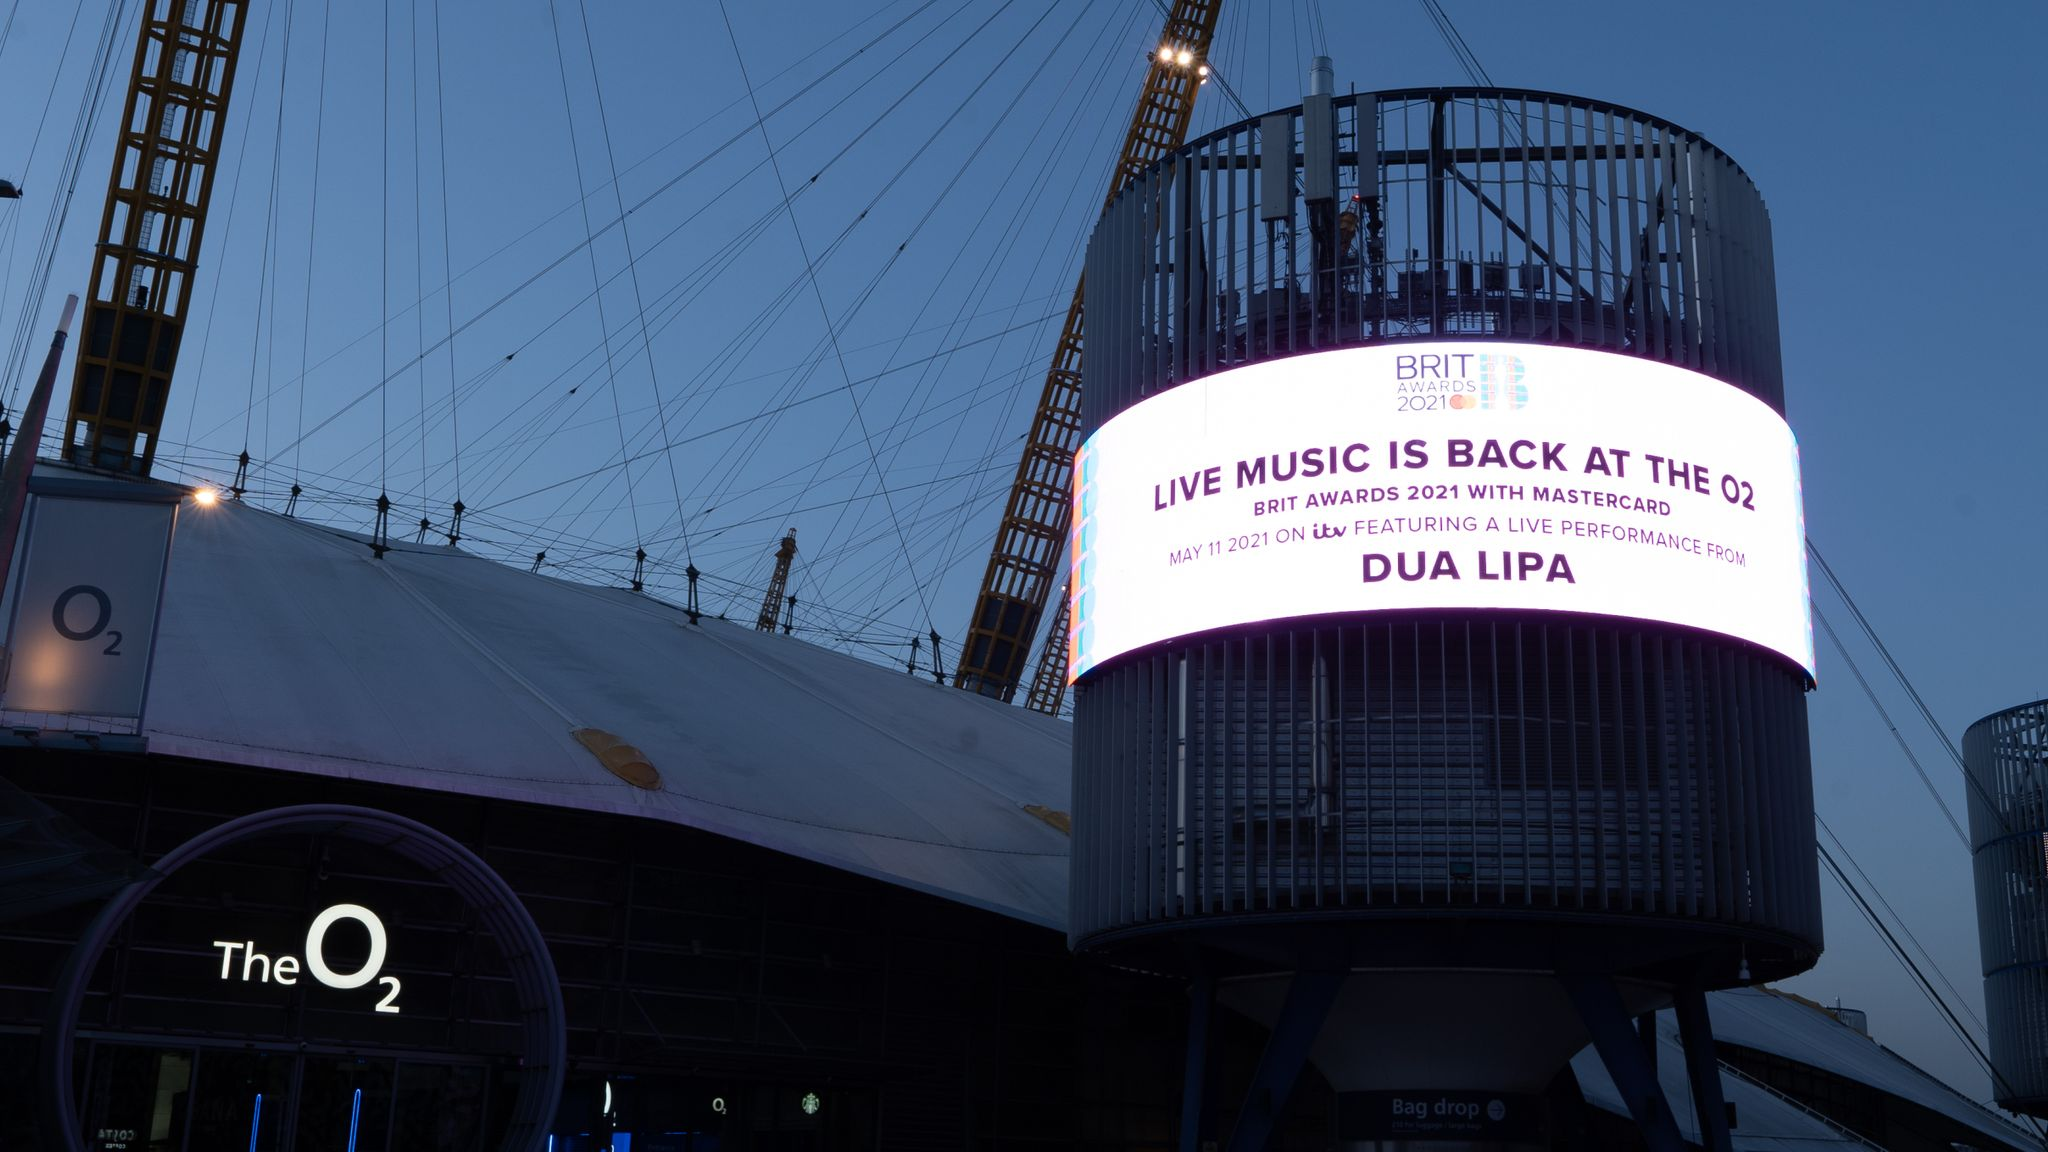 A billboard outside the O2 shows Dua Lipa will be performing at the Brit Awards